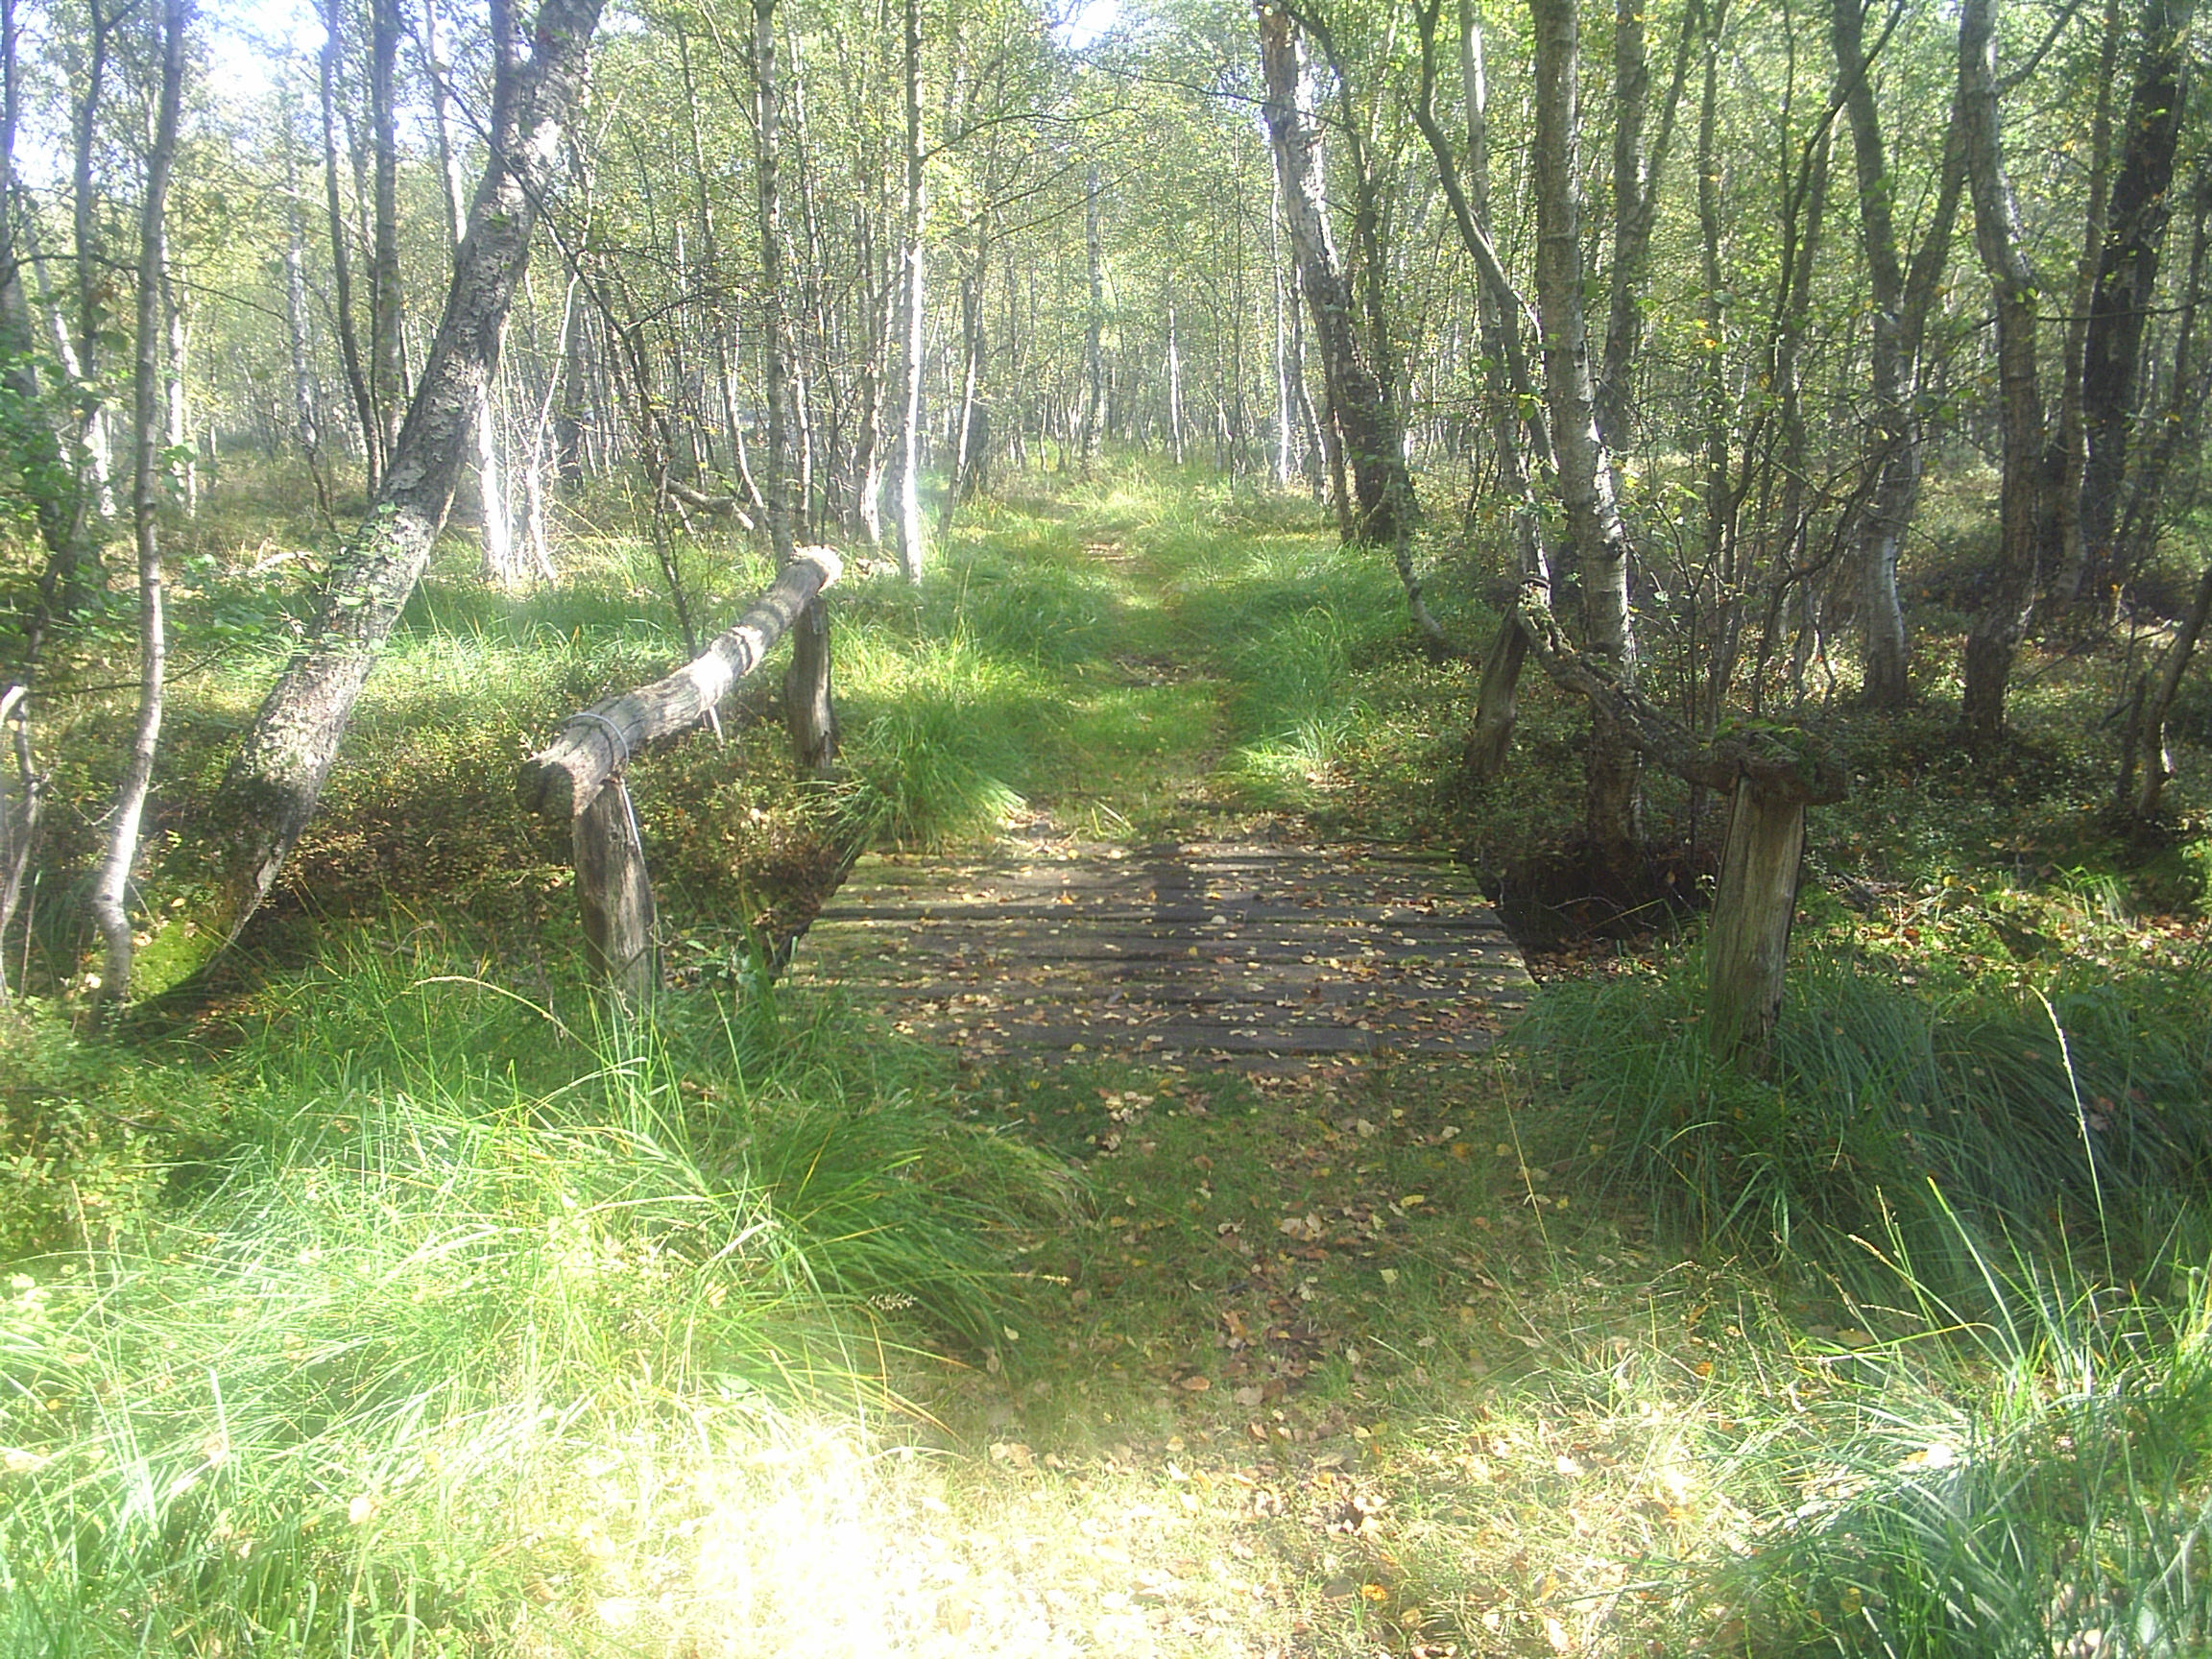 Small bridge in the boggy ground